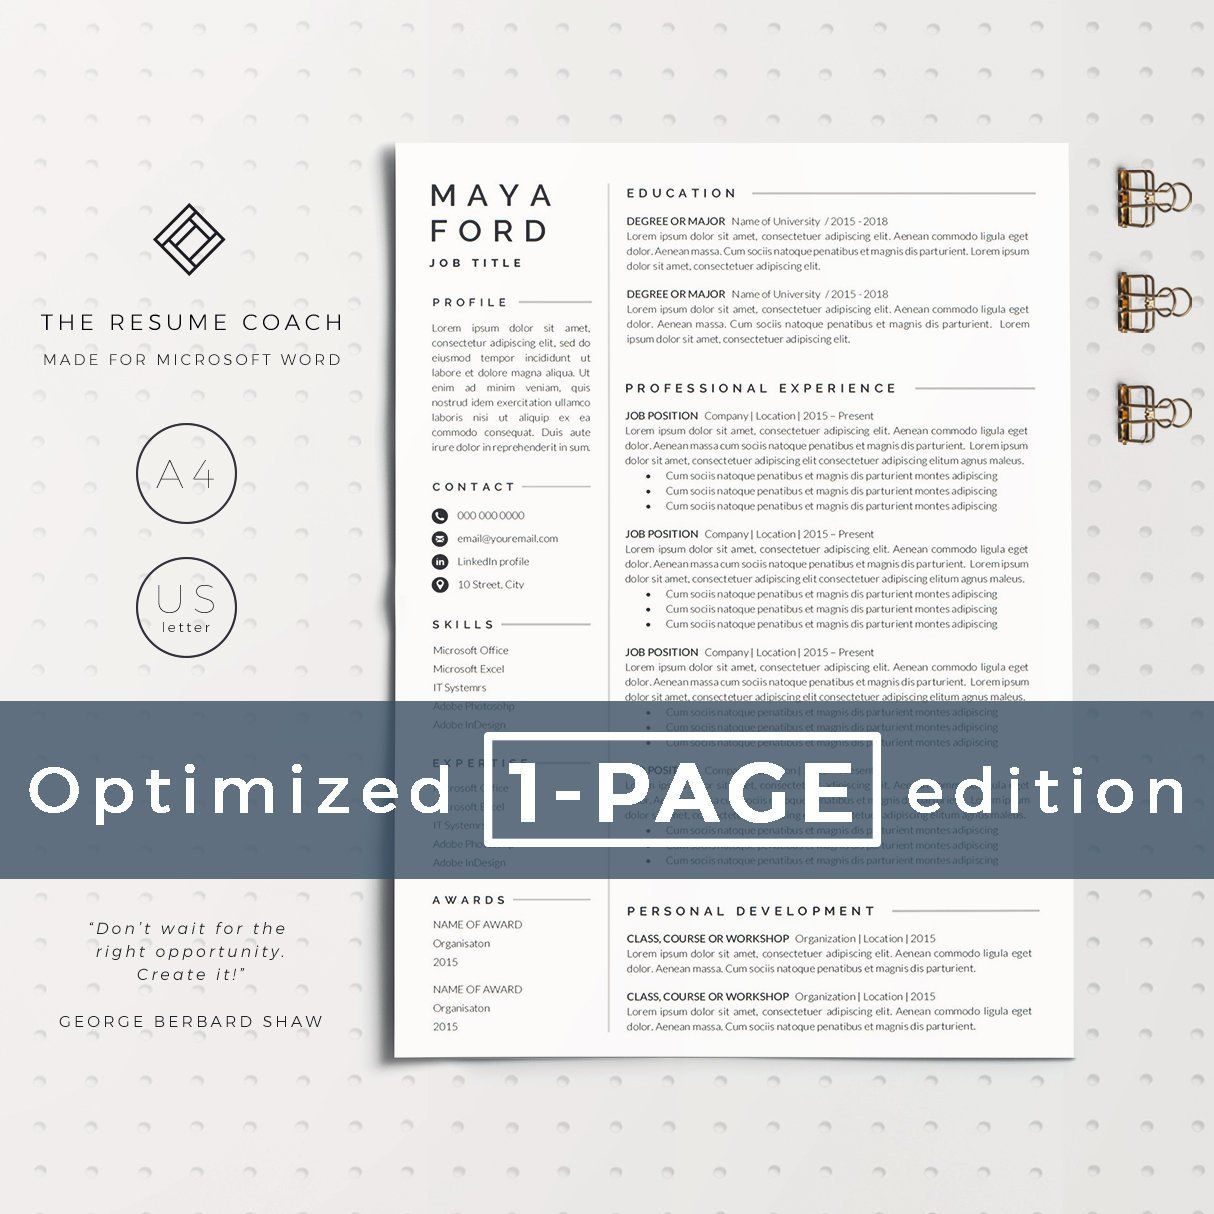 resume template one page resume professional resume modern